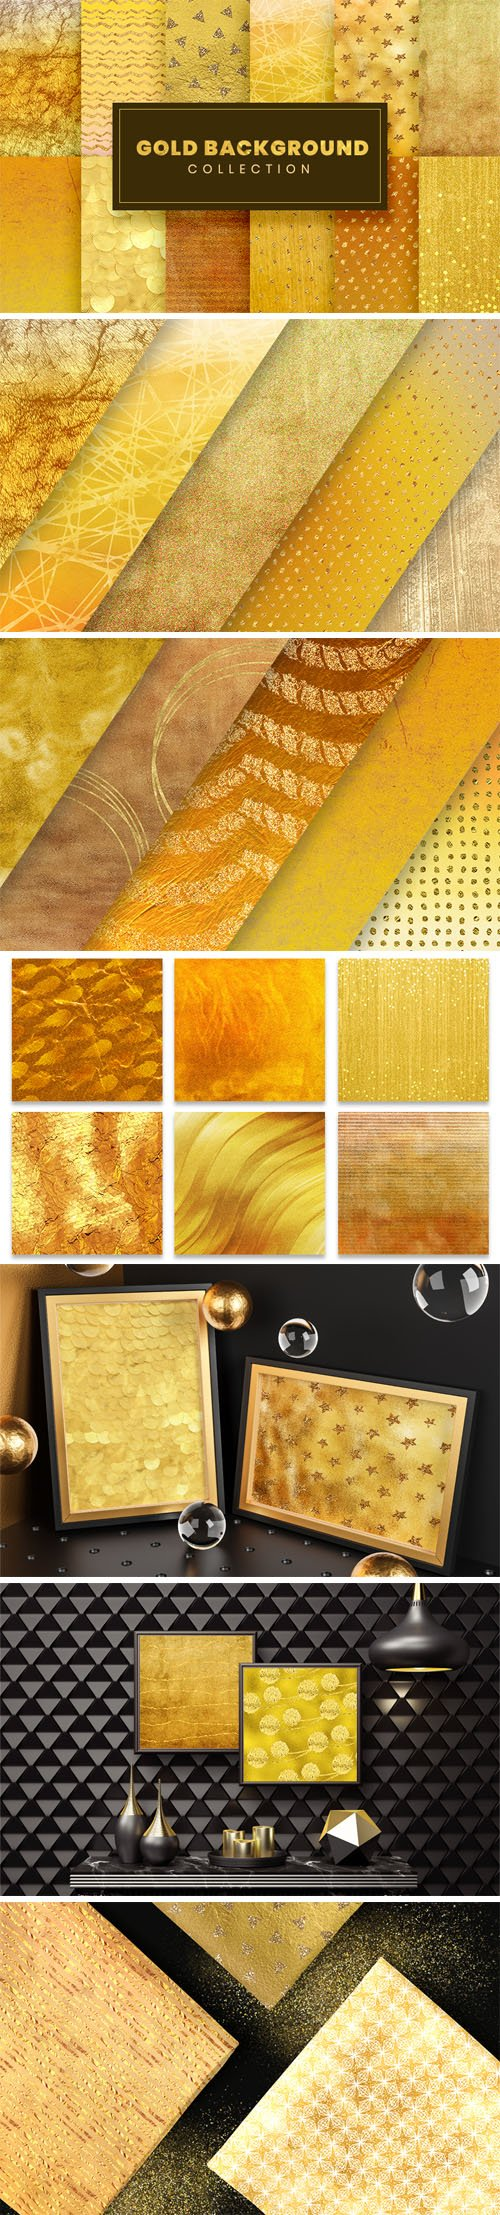 25 Gold Backgrounds Collection